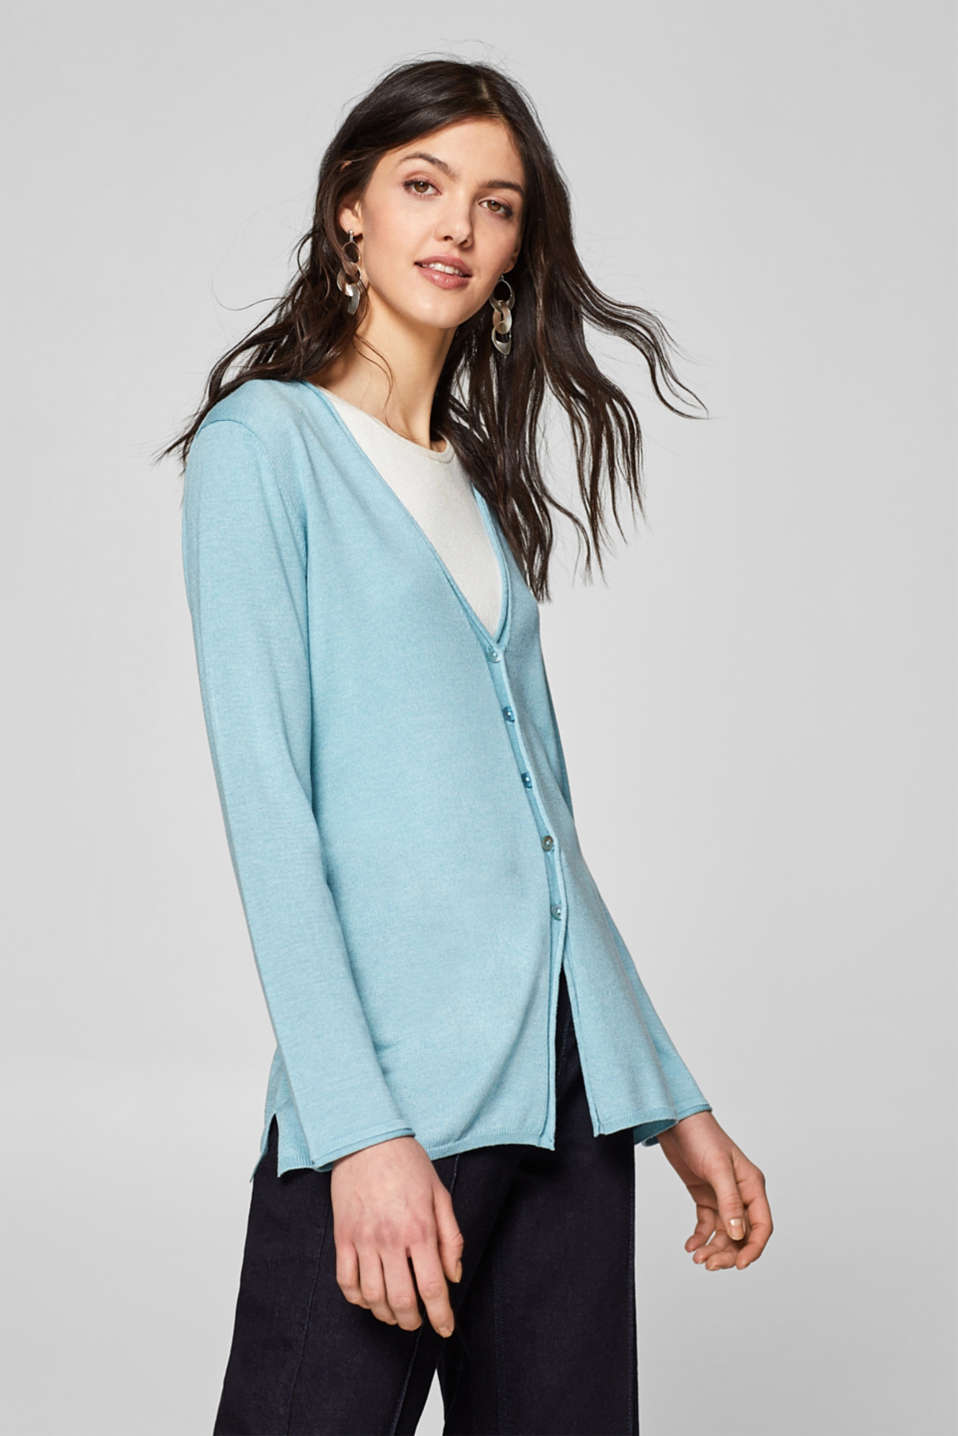 Esprit - Fine-knit cardigan with rolled edges, recycled